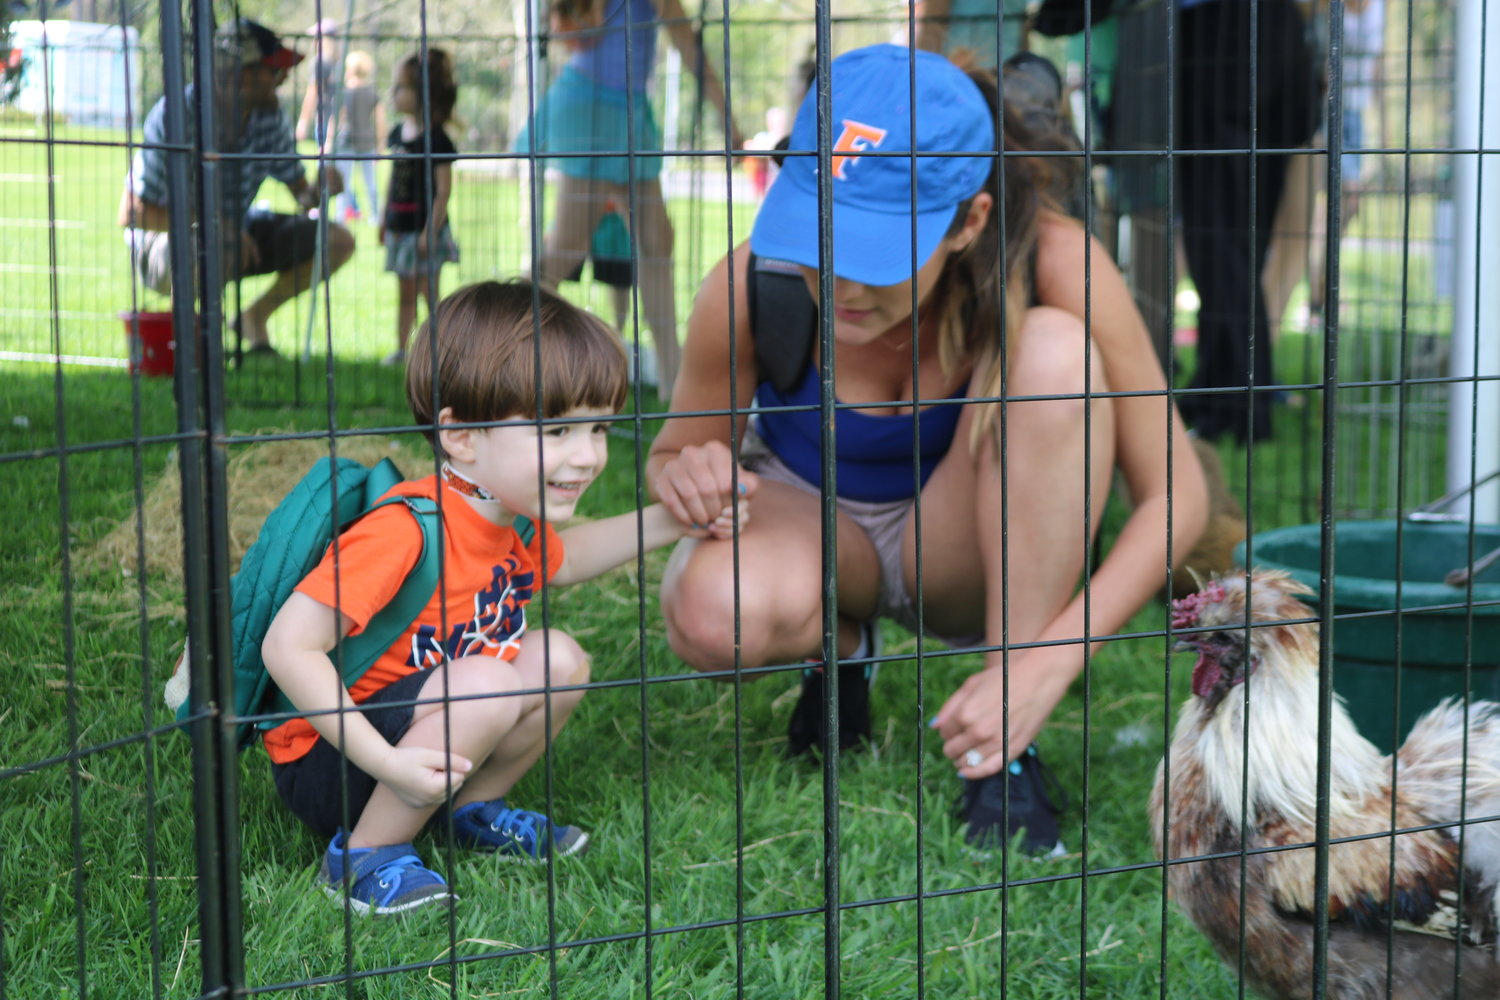 Attendees of the grand opening enjoy playing in the petting zoo.